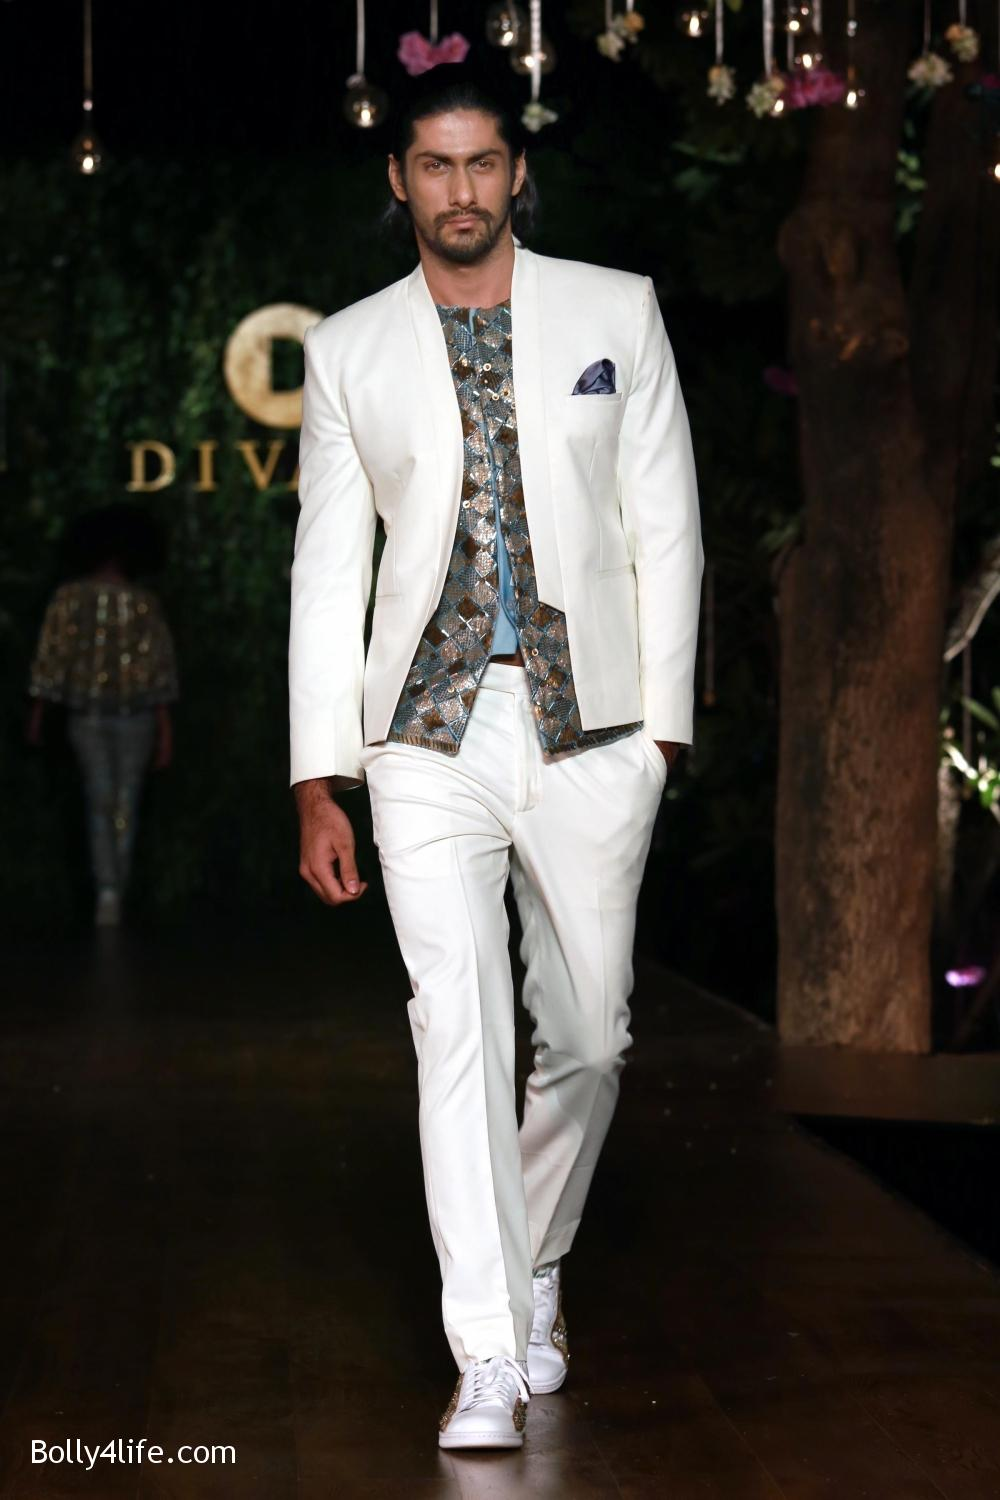 Divani-Fashion-Show-Ranveer-Singh-and-Vaani-Kapoor-6.jpg